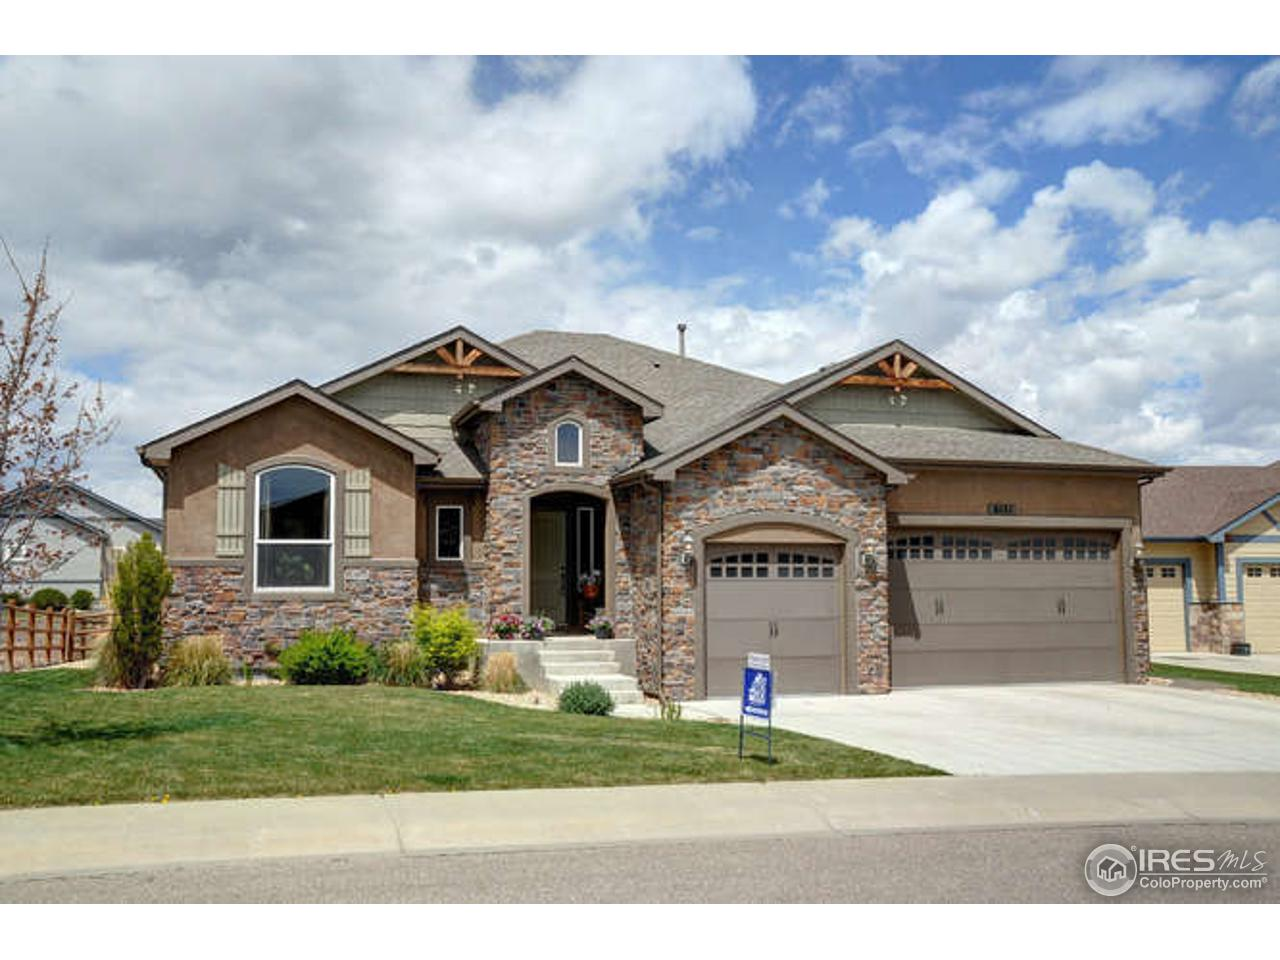 6121 Chesney Ct, Windsor, CO 80550